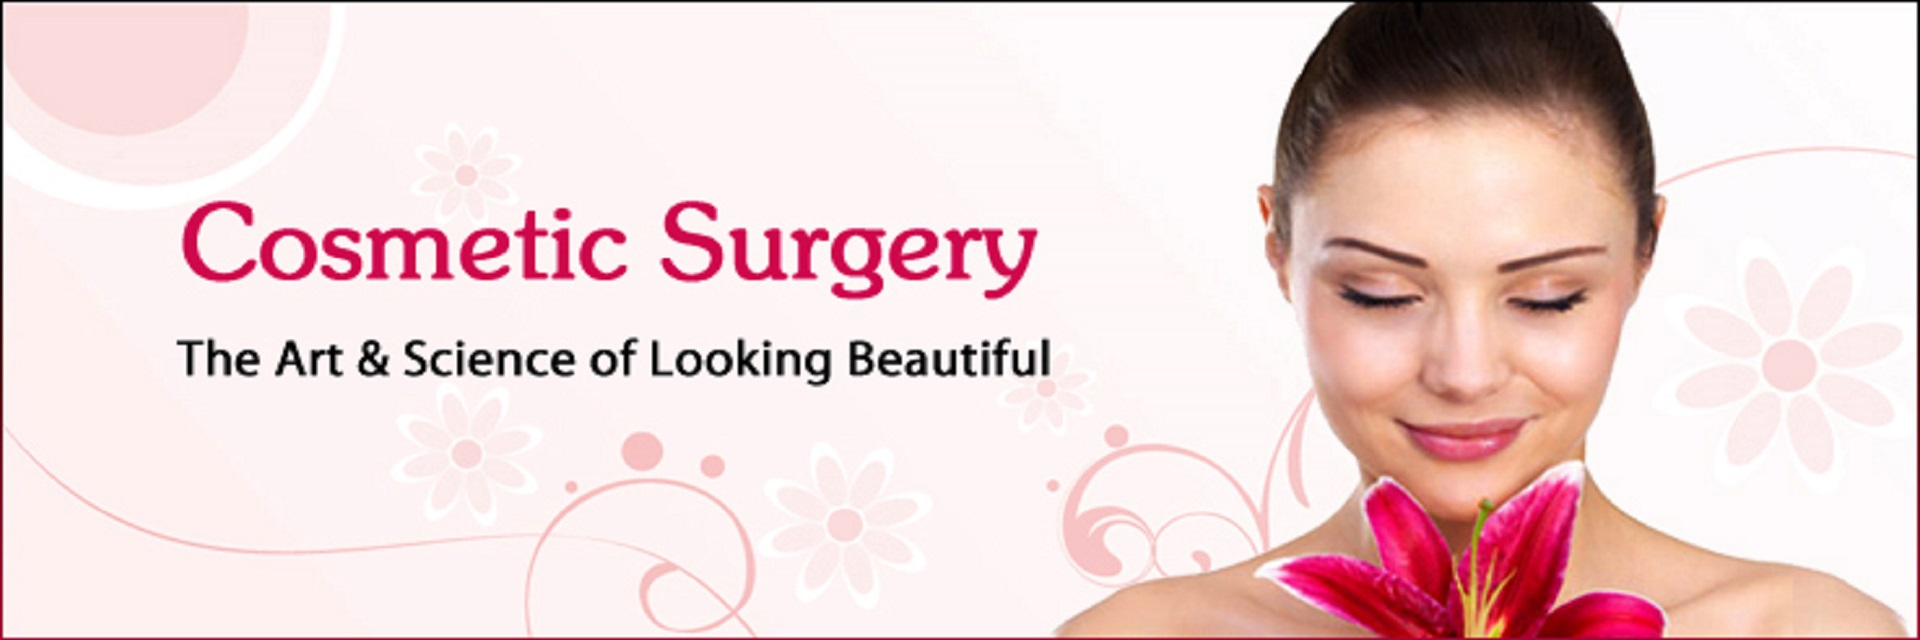 Cosmetic surgery cover